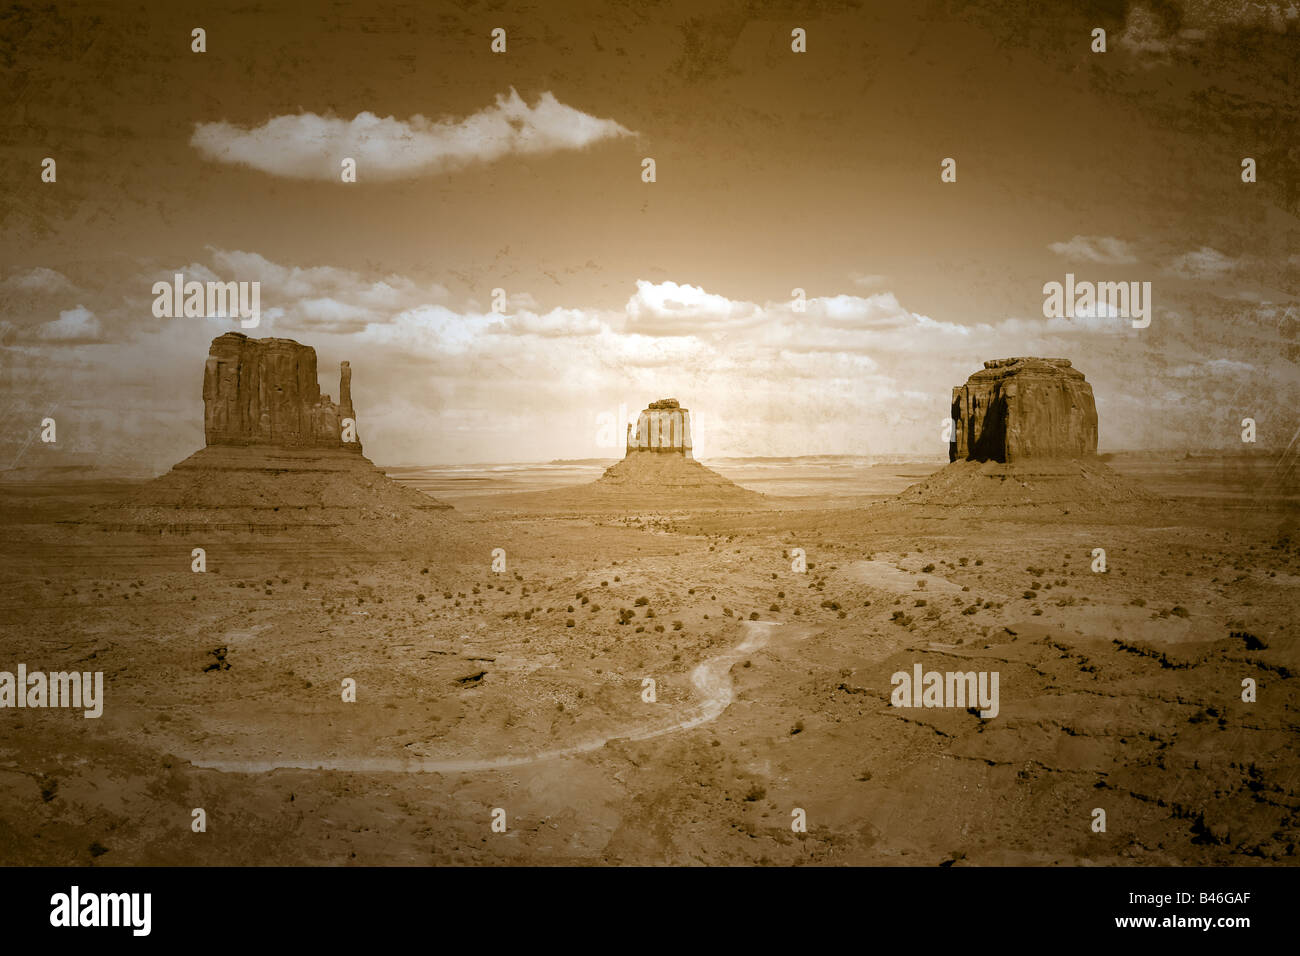 Grunge Tattered Vintage Style Photograph of Monument Valley Landscape Intentional Distressing Applied - Stock Image